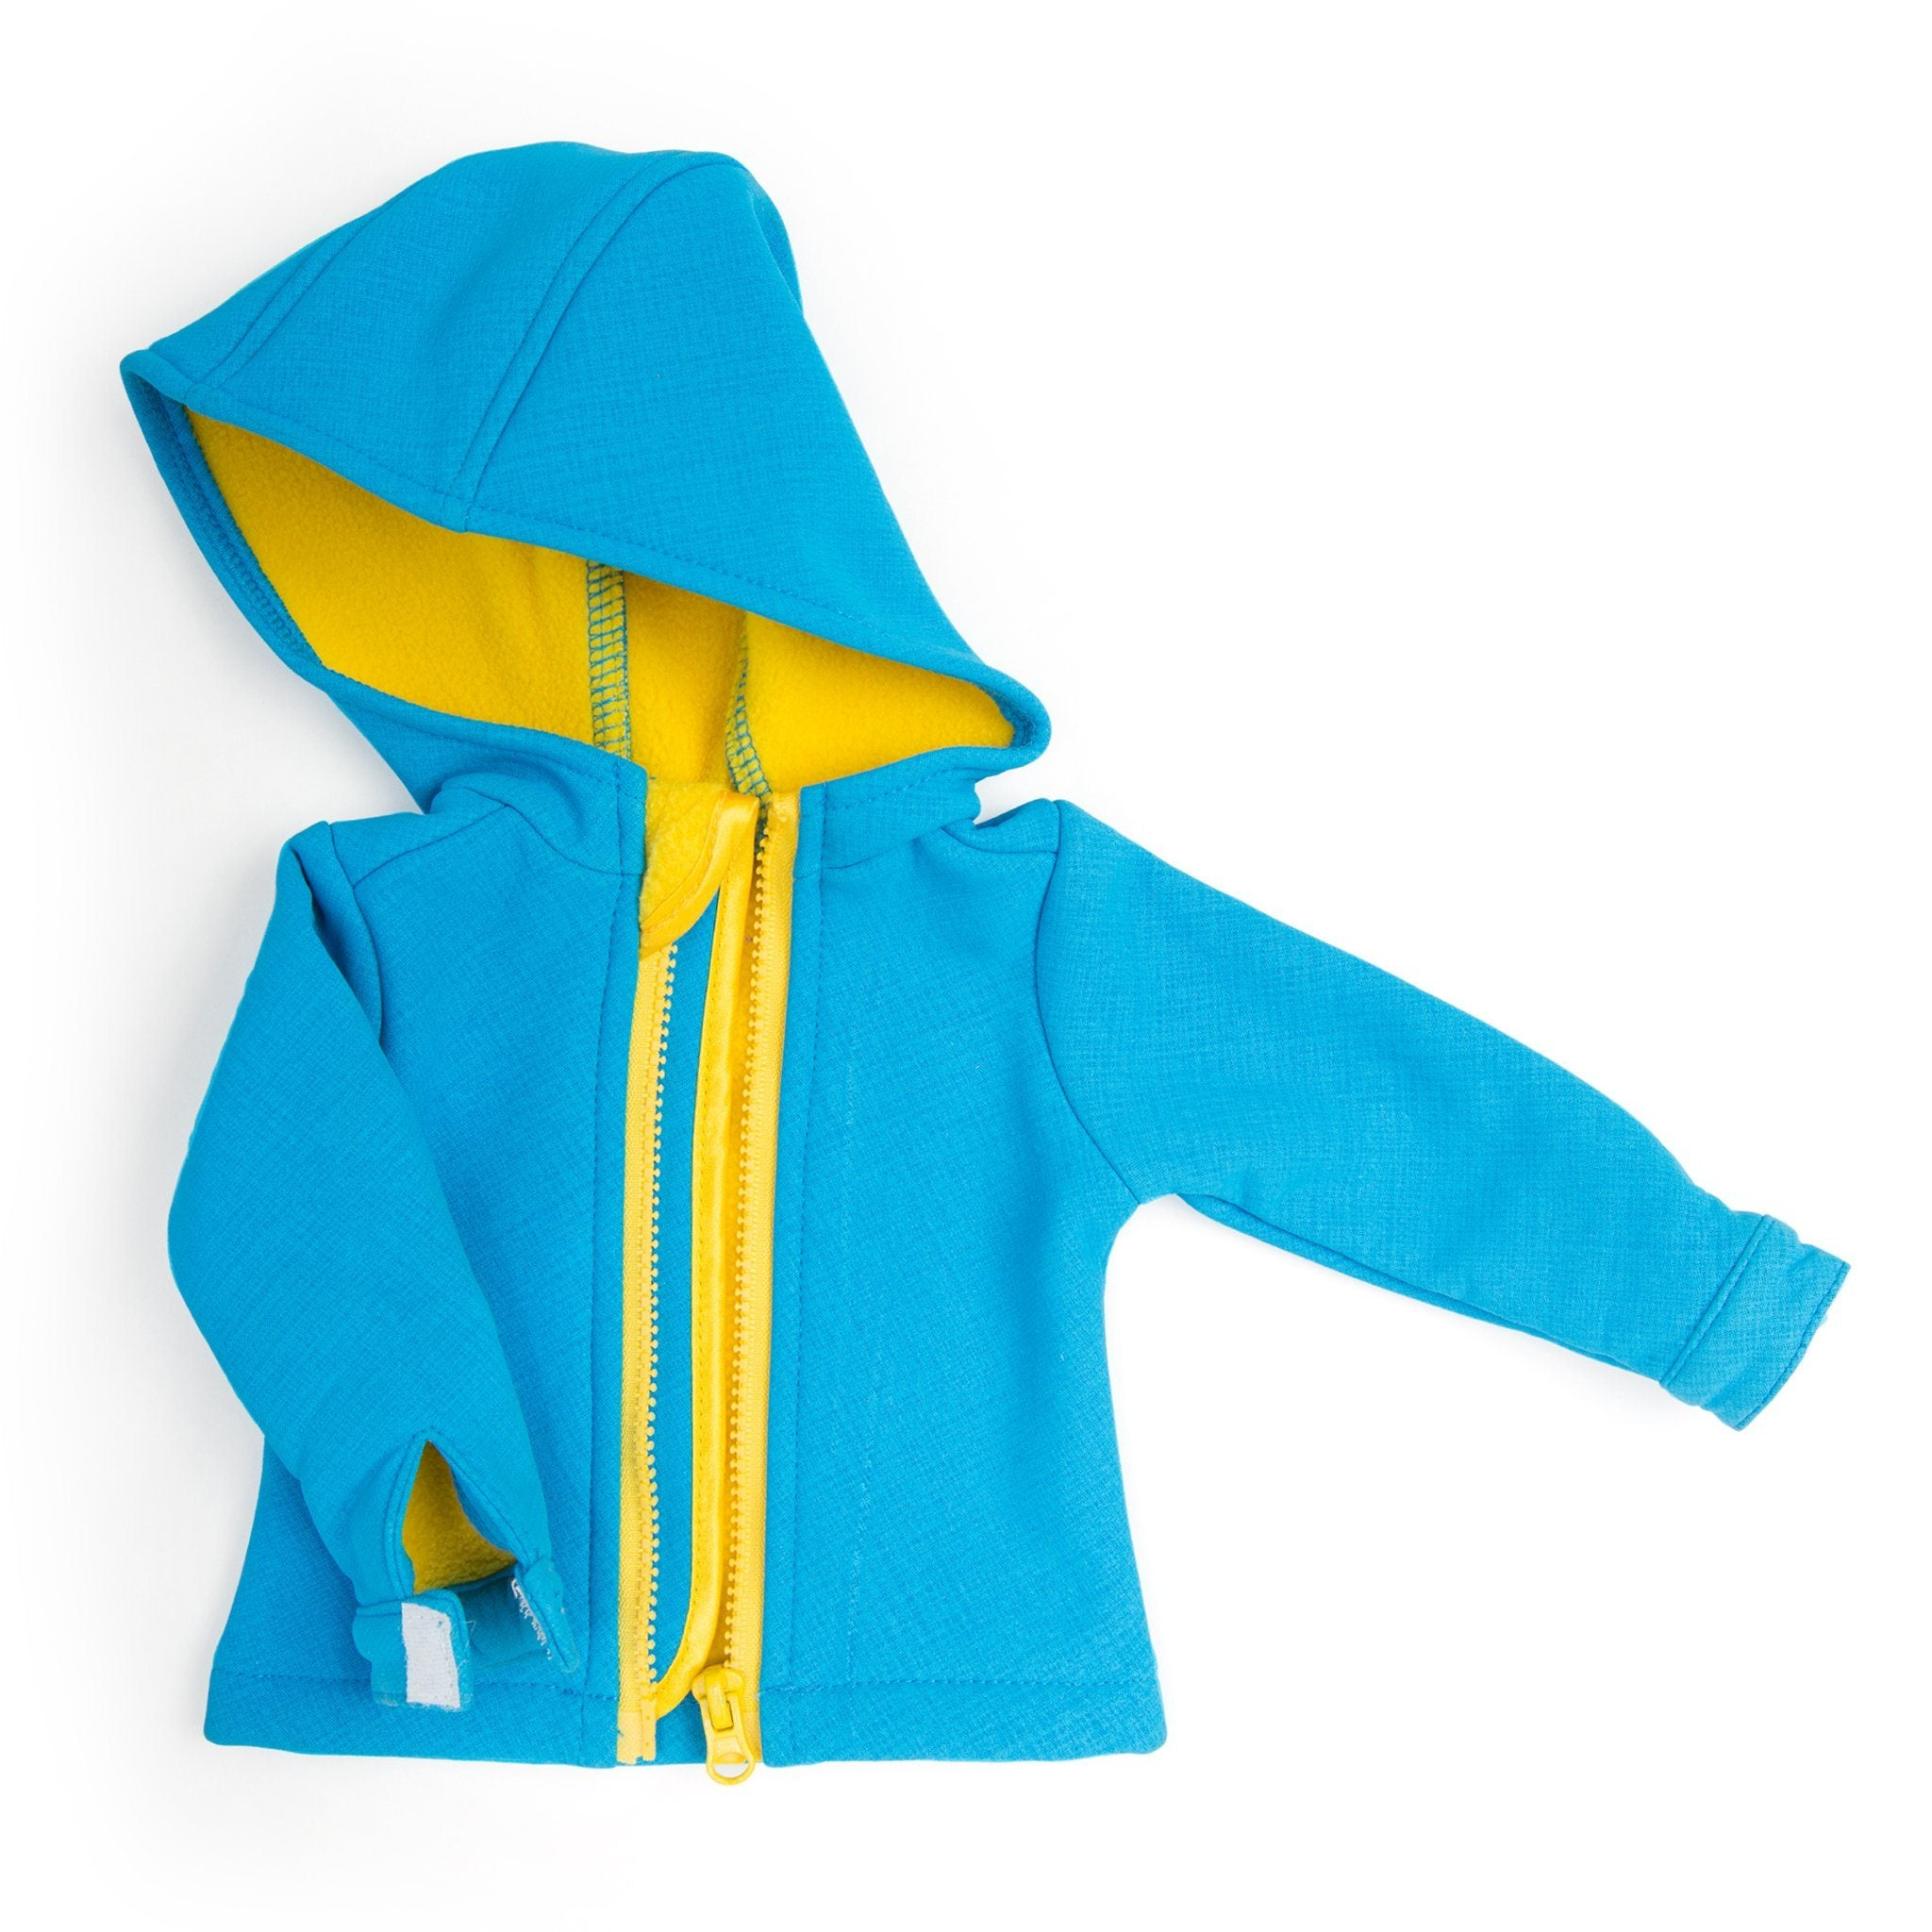 Blue rain jacket with yellow lining fits all 18 inch dolls.